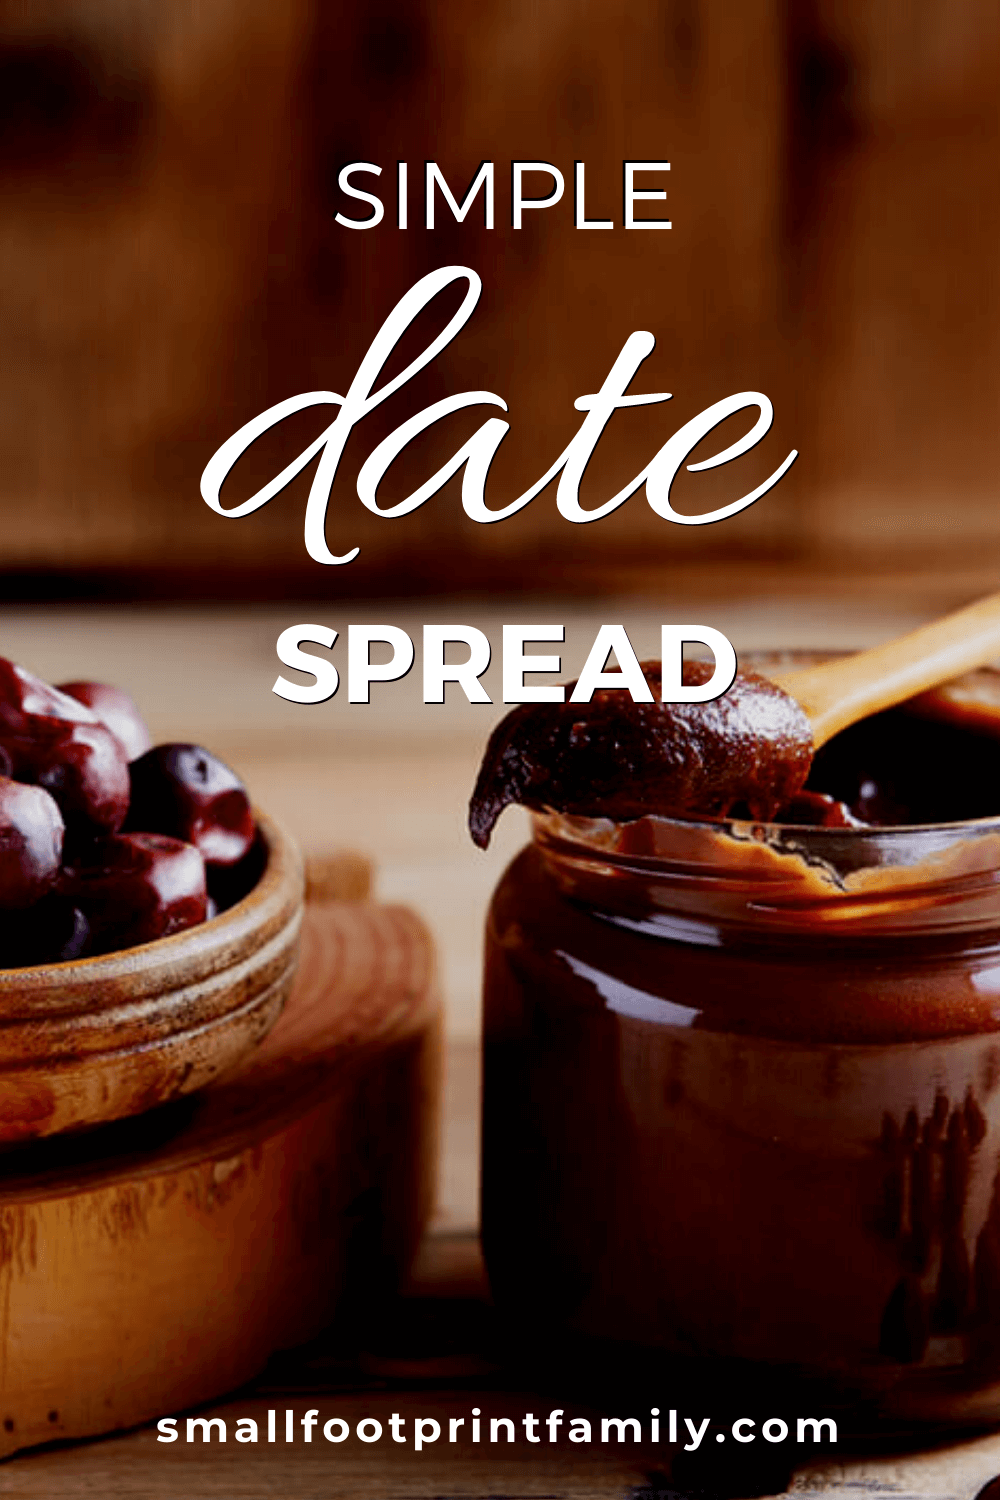 dates in a bowl next to a jar of date puree